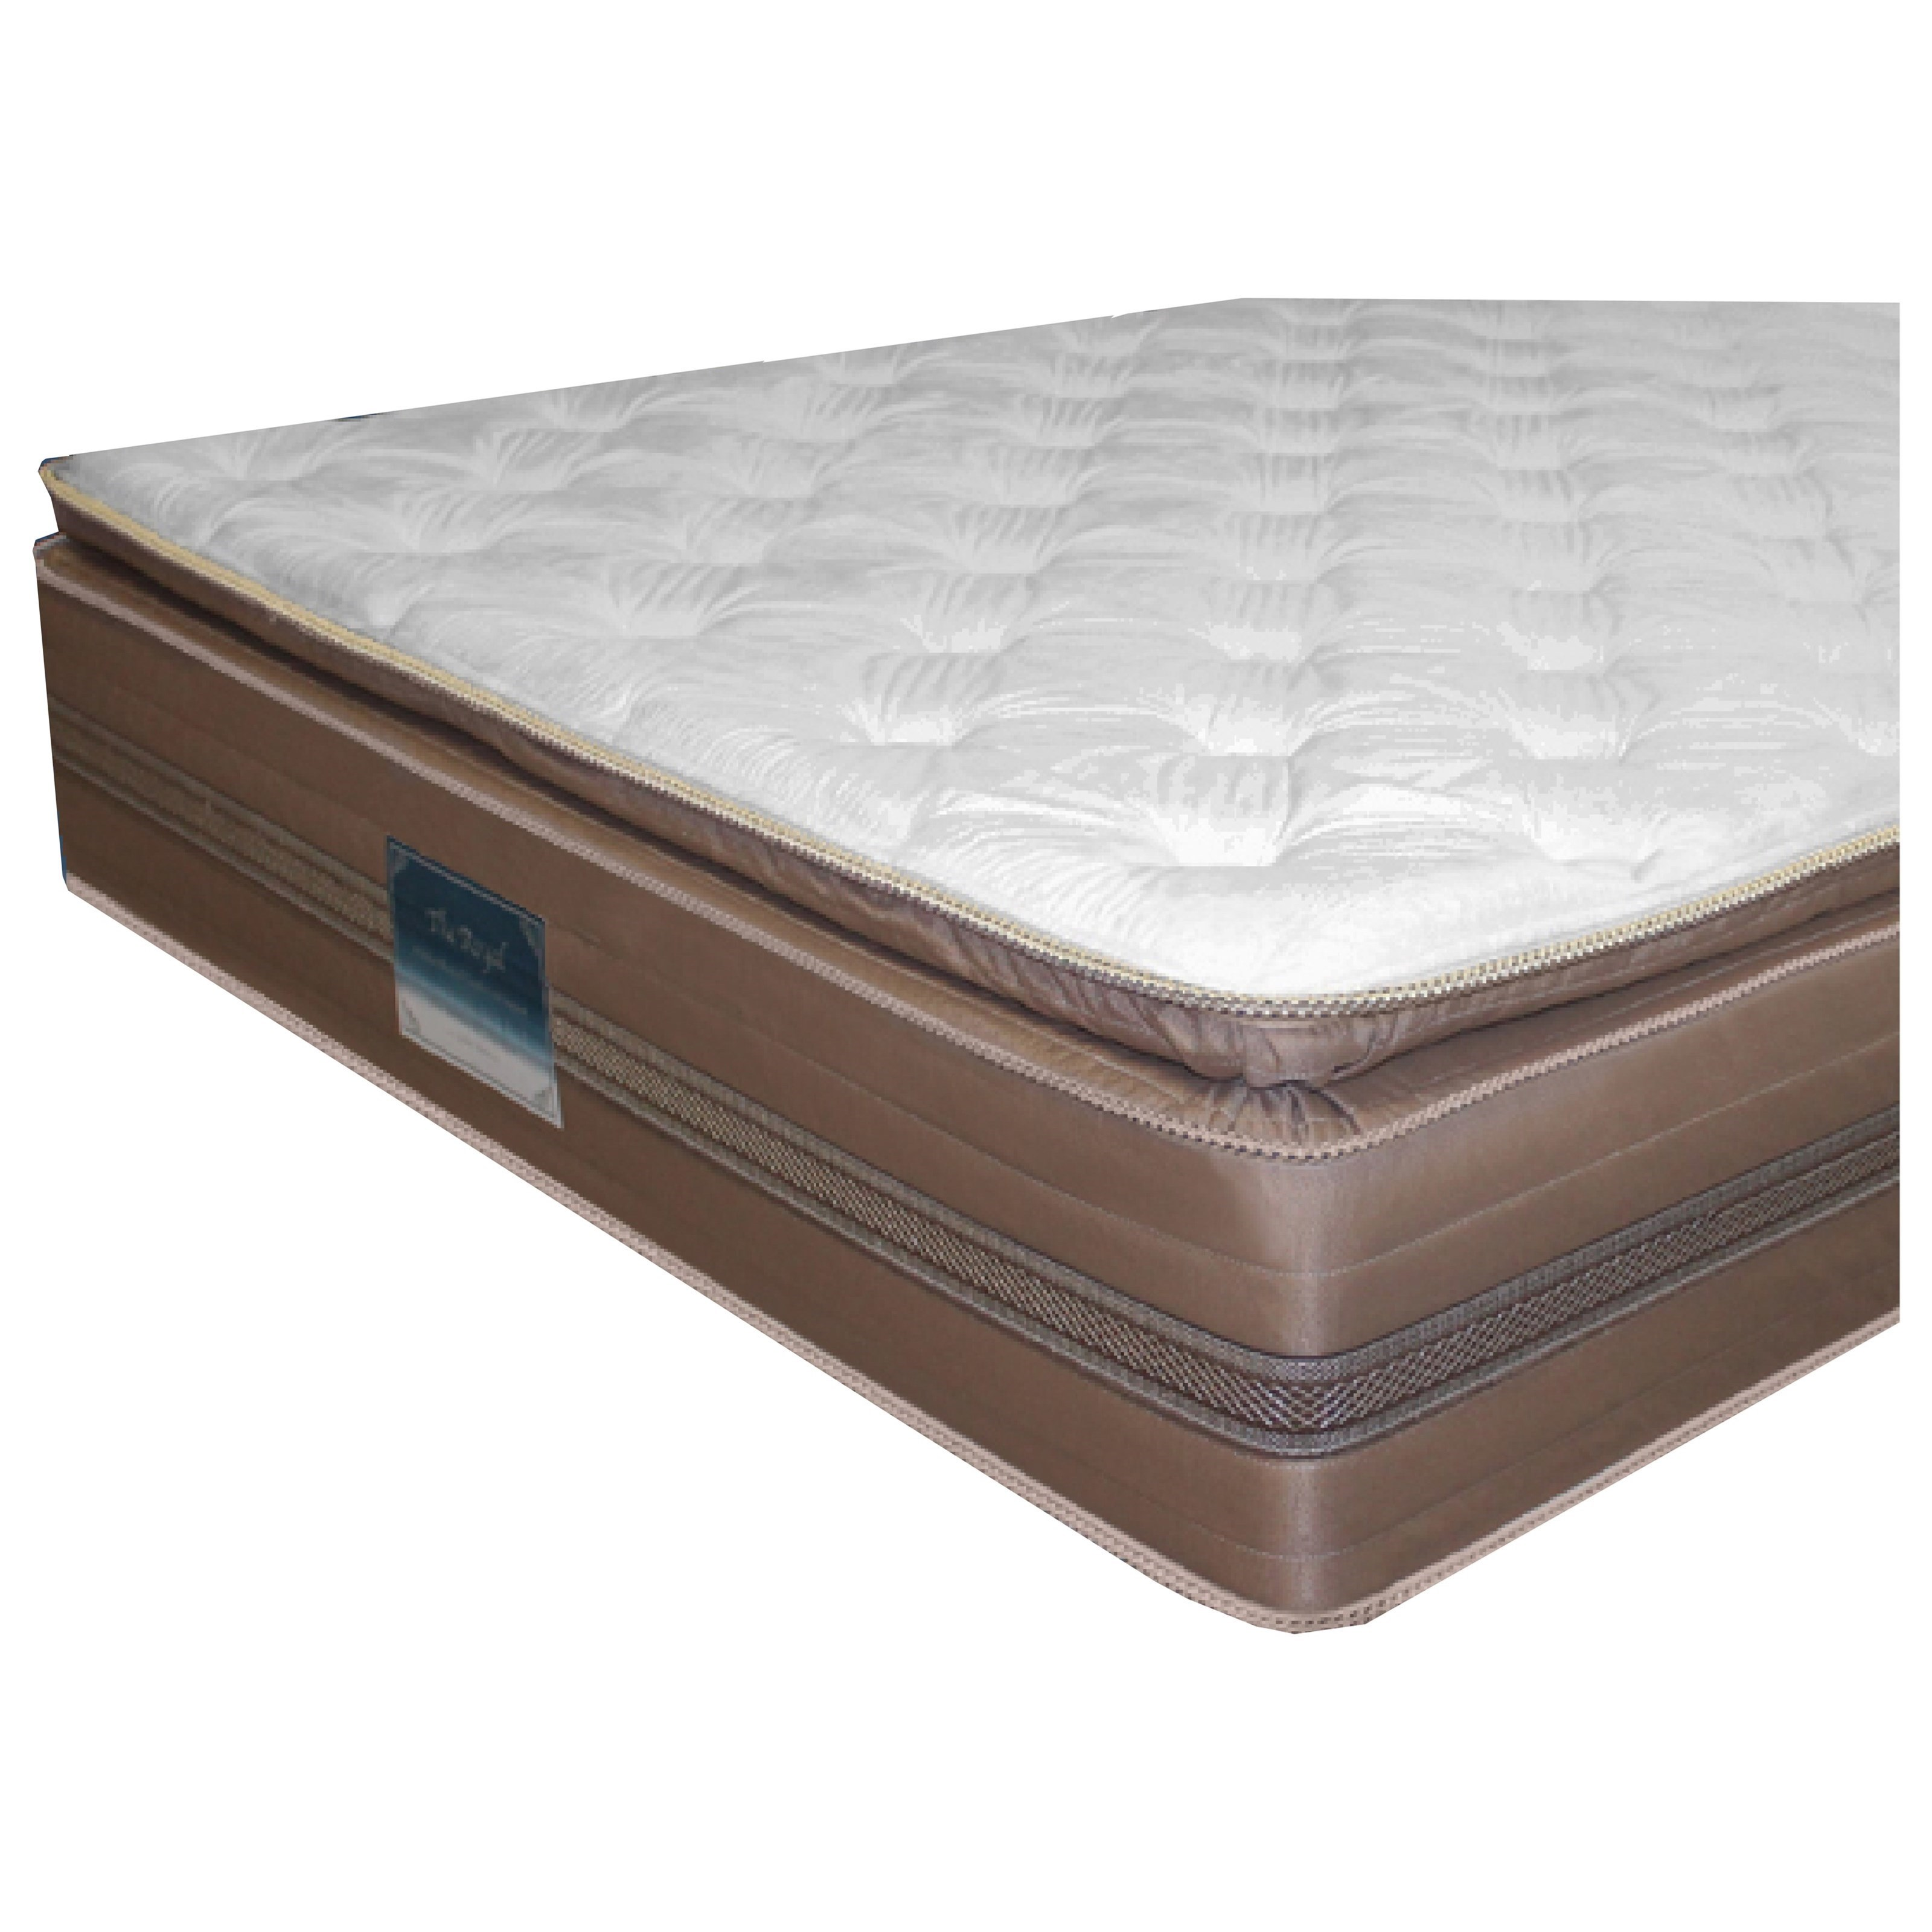 Golden Mattress Company 4-Royal Pillow Top King Pillow Top Mattress Set - Item Number: 4-RoyalPT-K+2xWoodfndtn-TXL